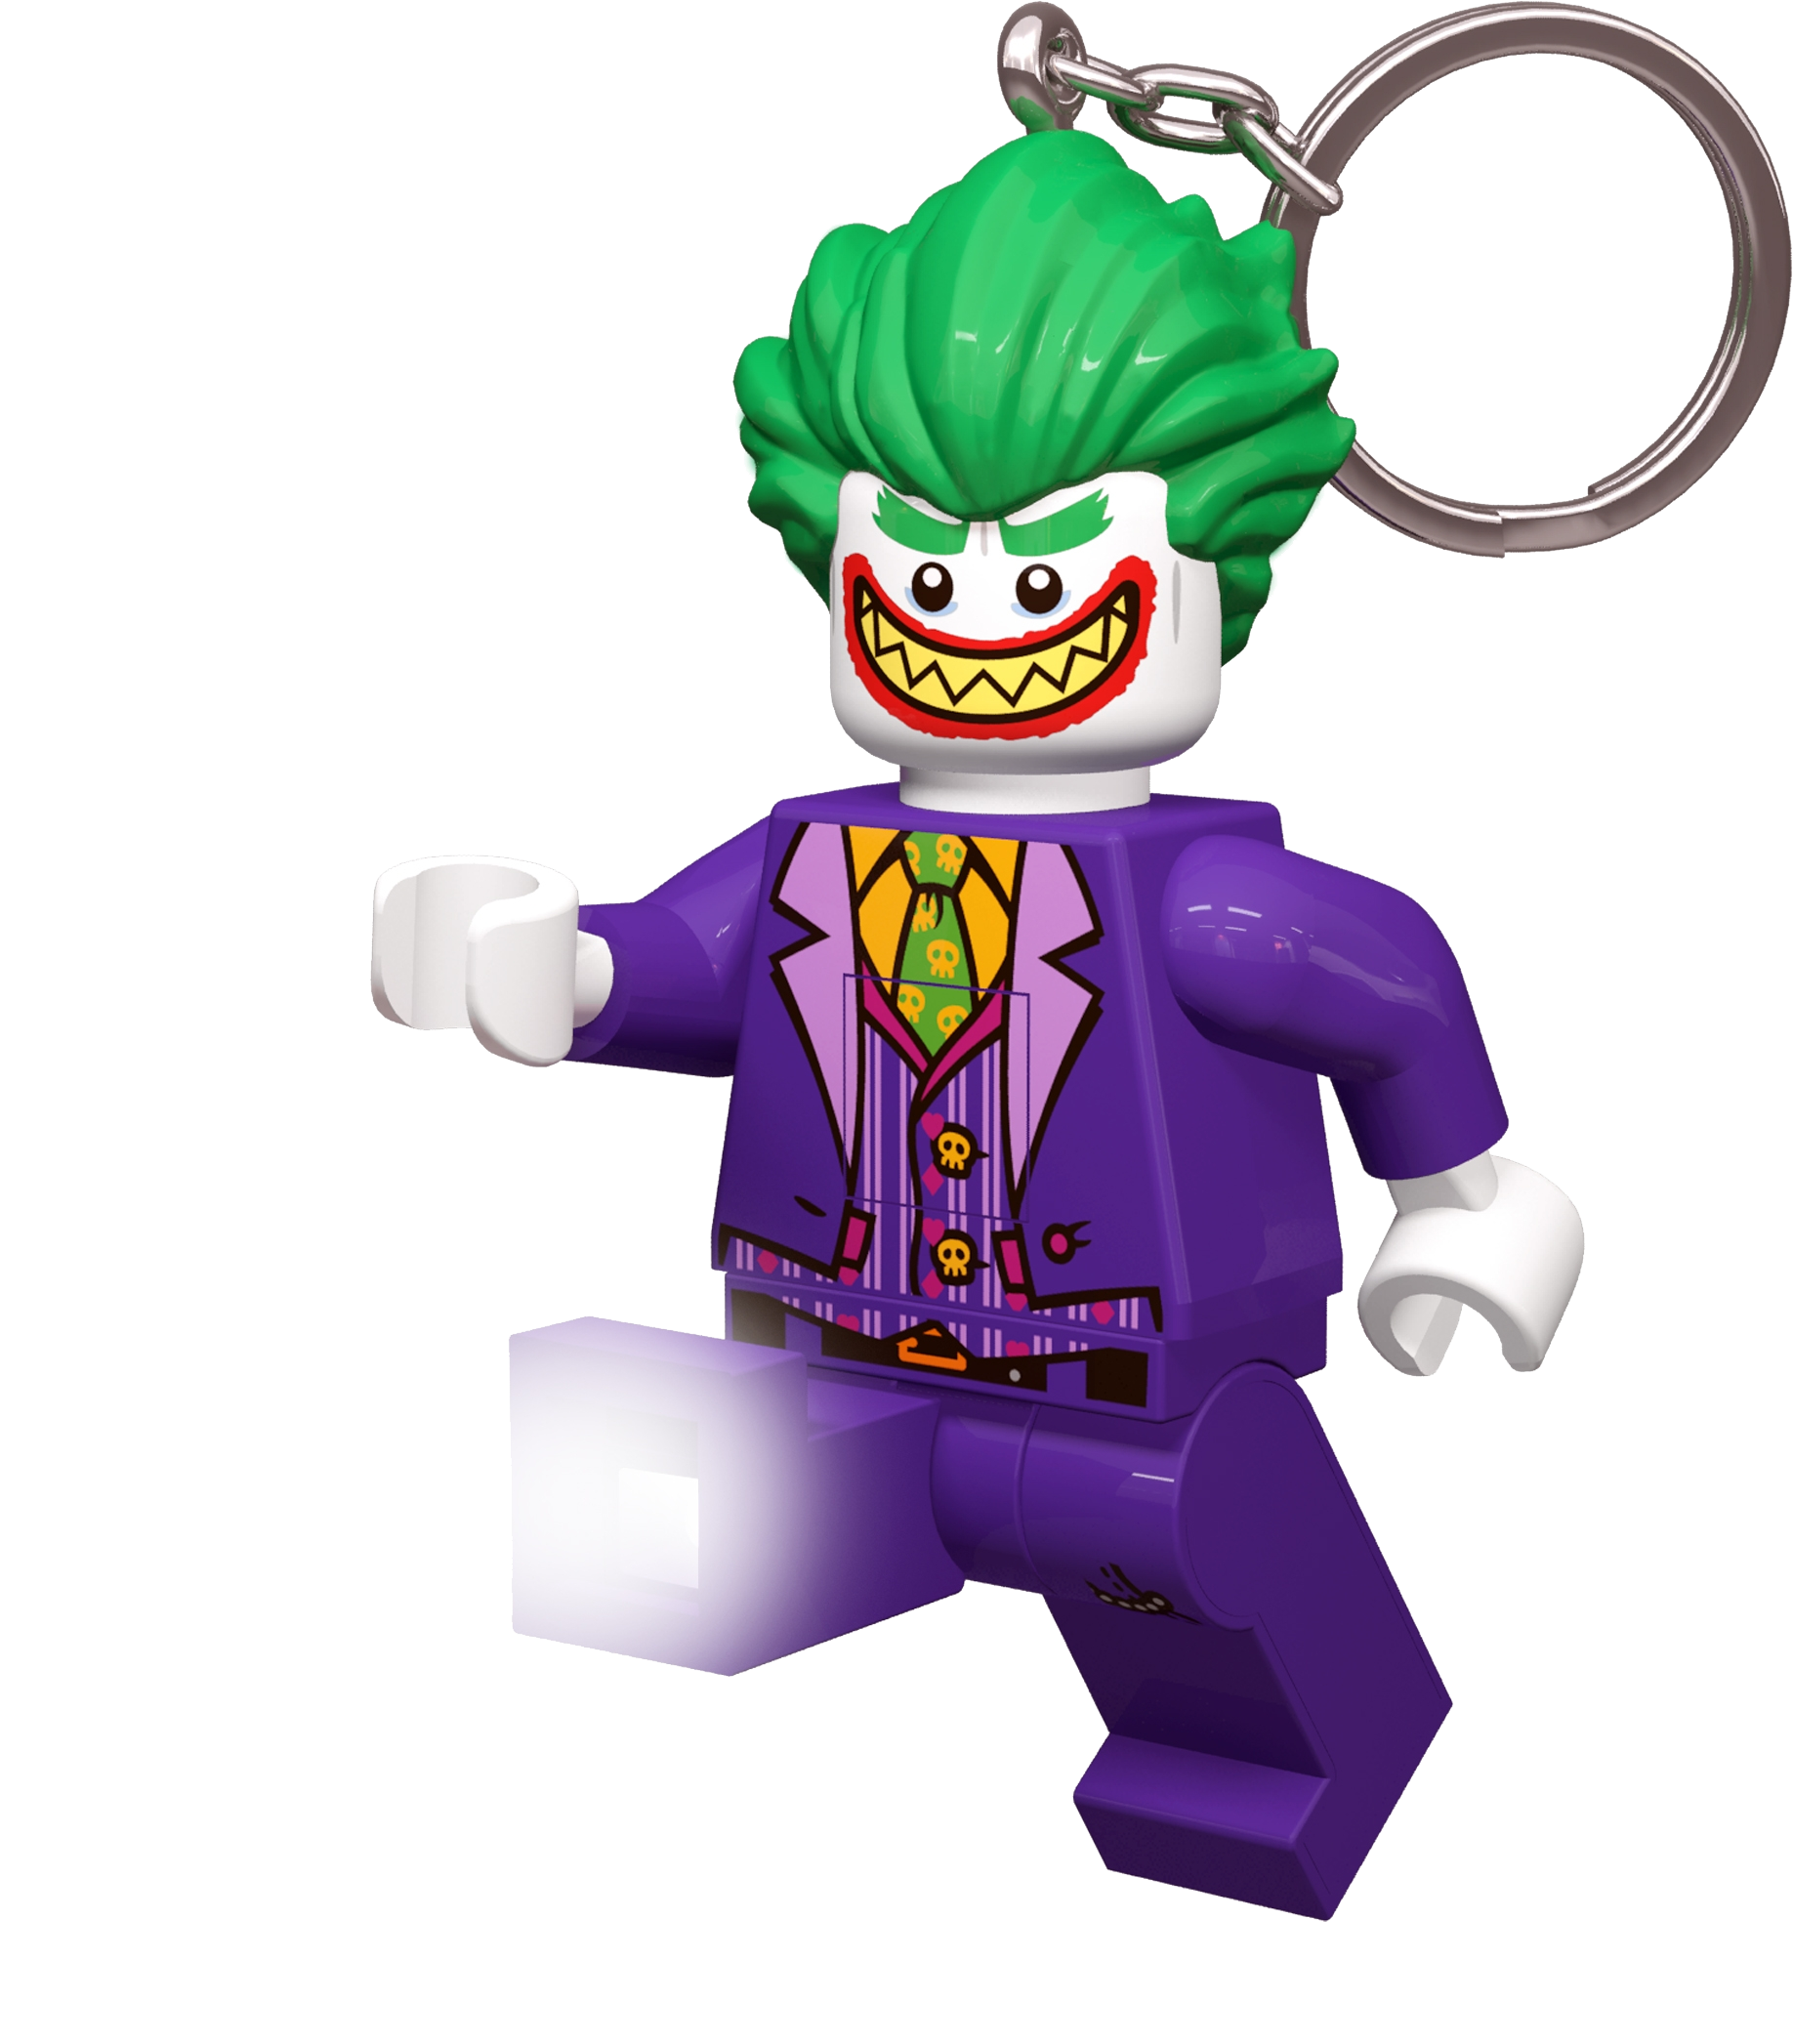 The Joker Key Light